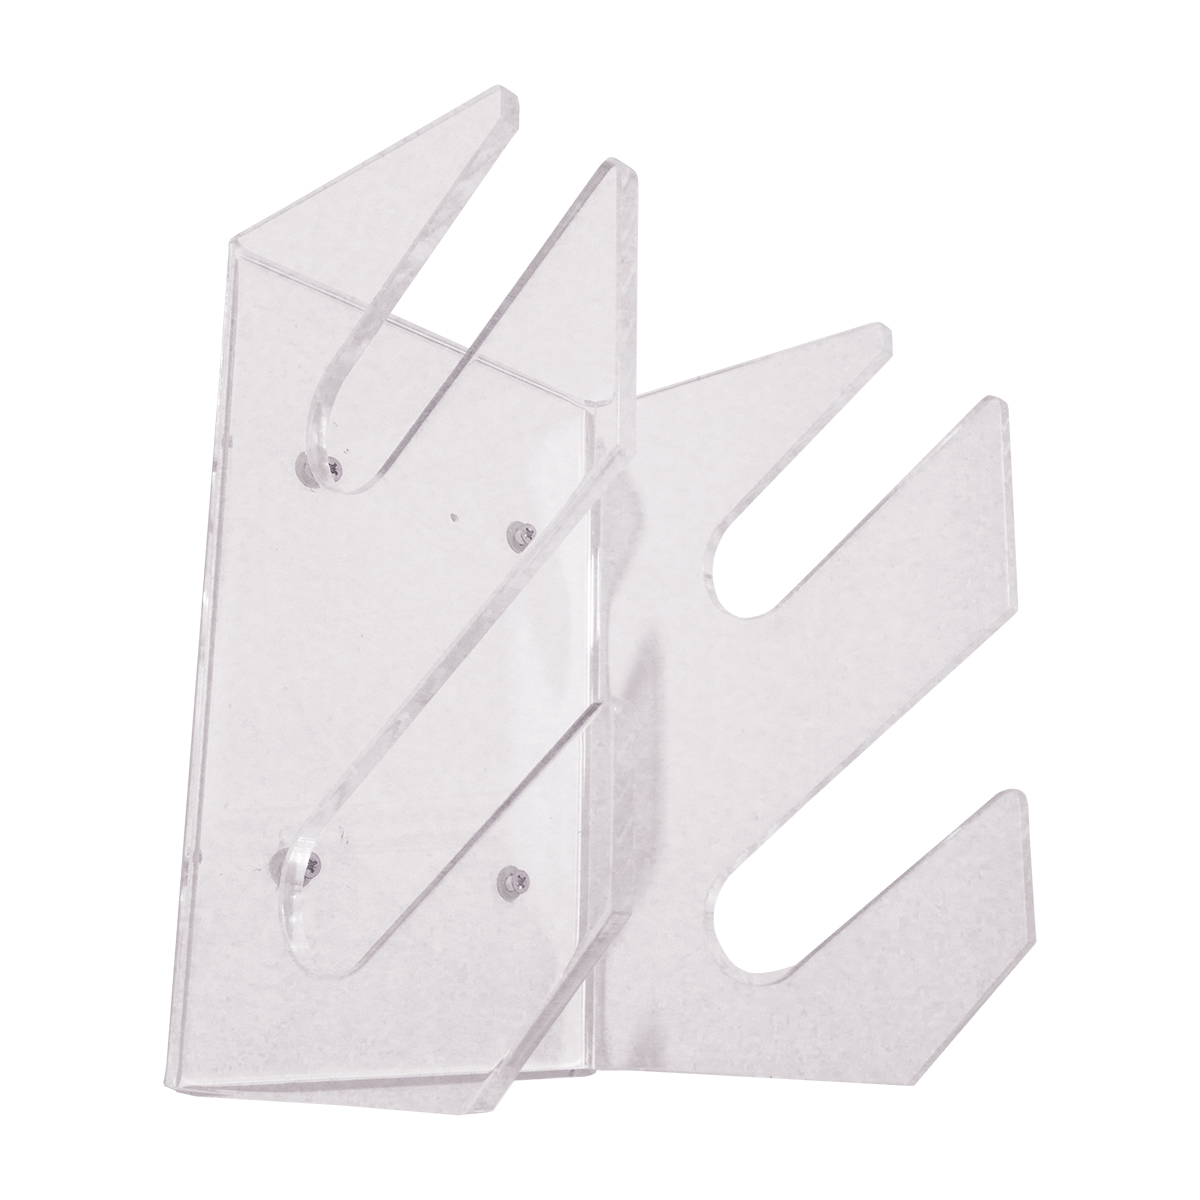 Double Board Wall Holder for Wakeboards, Snowboards and Longboards